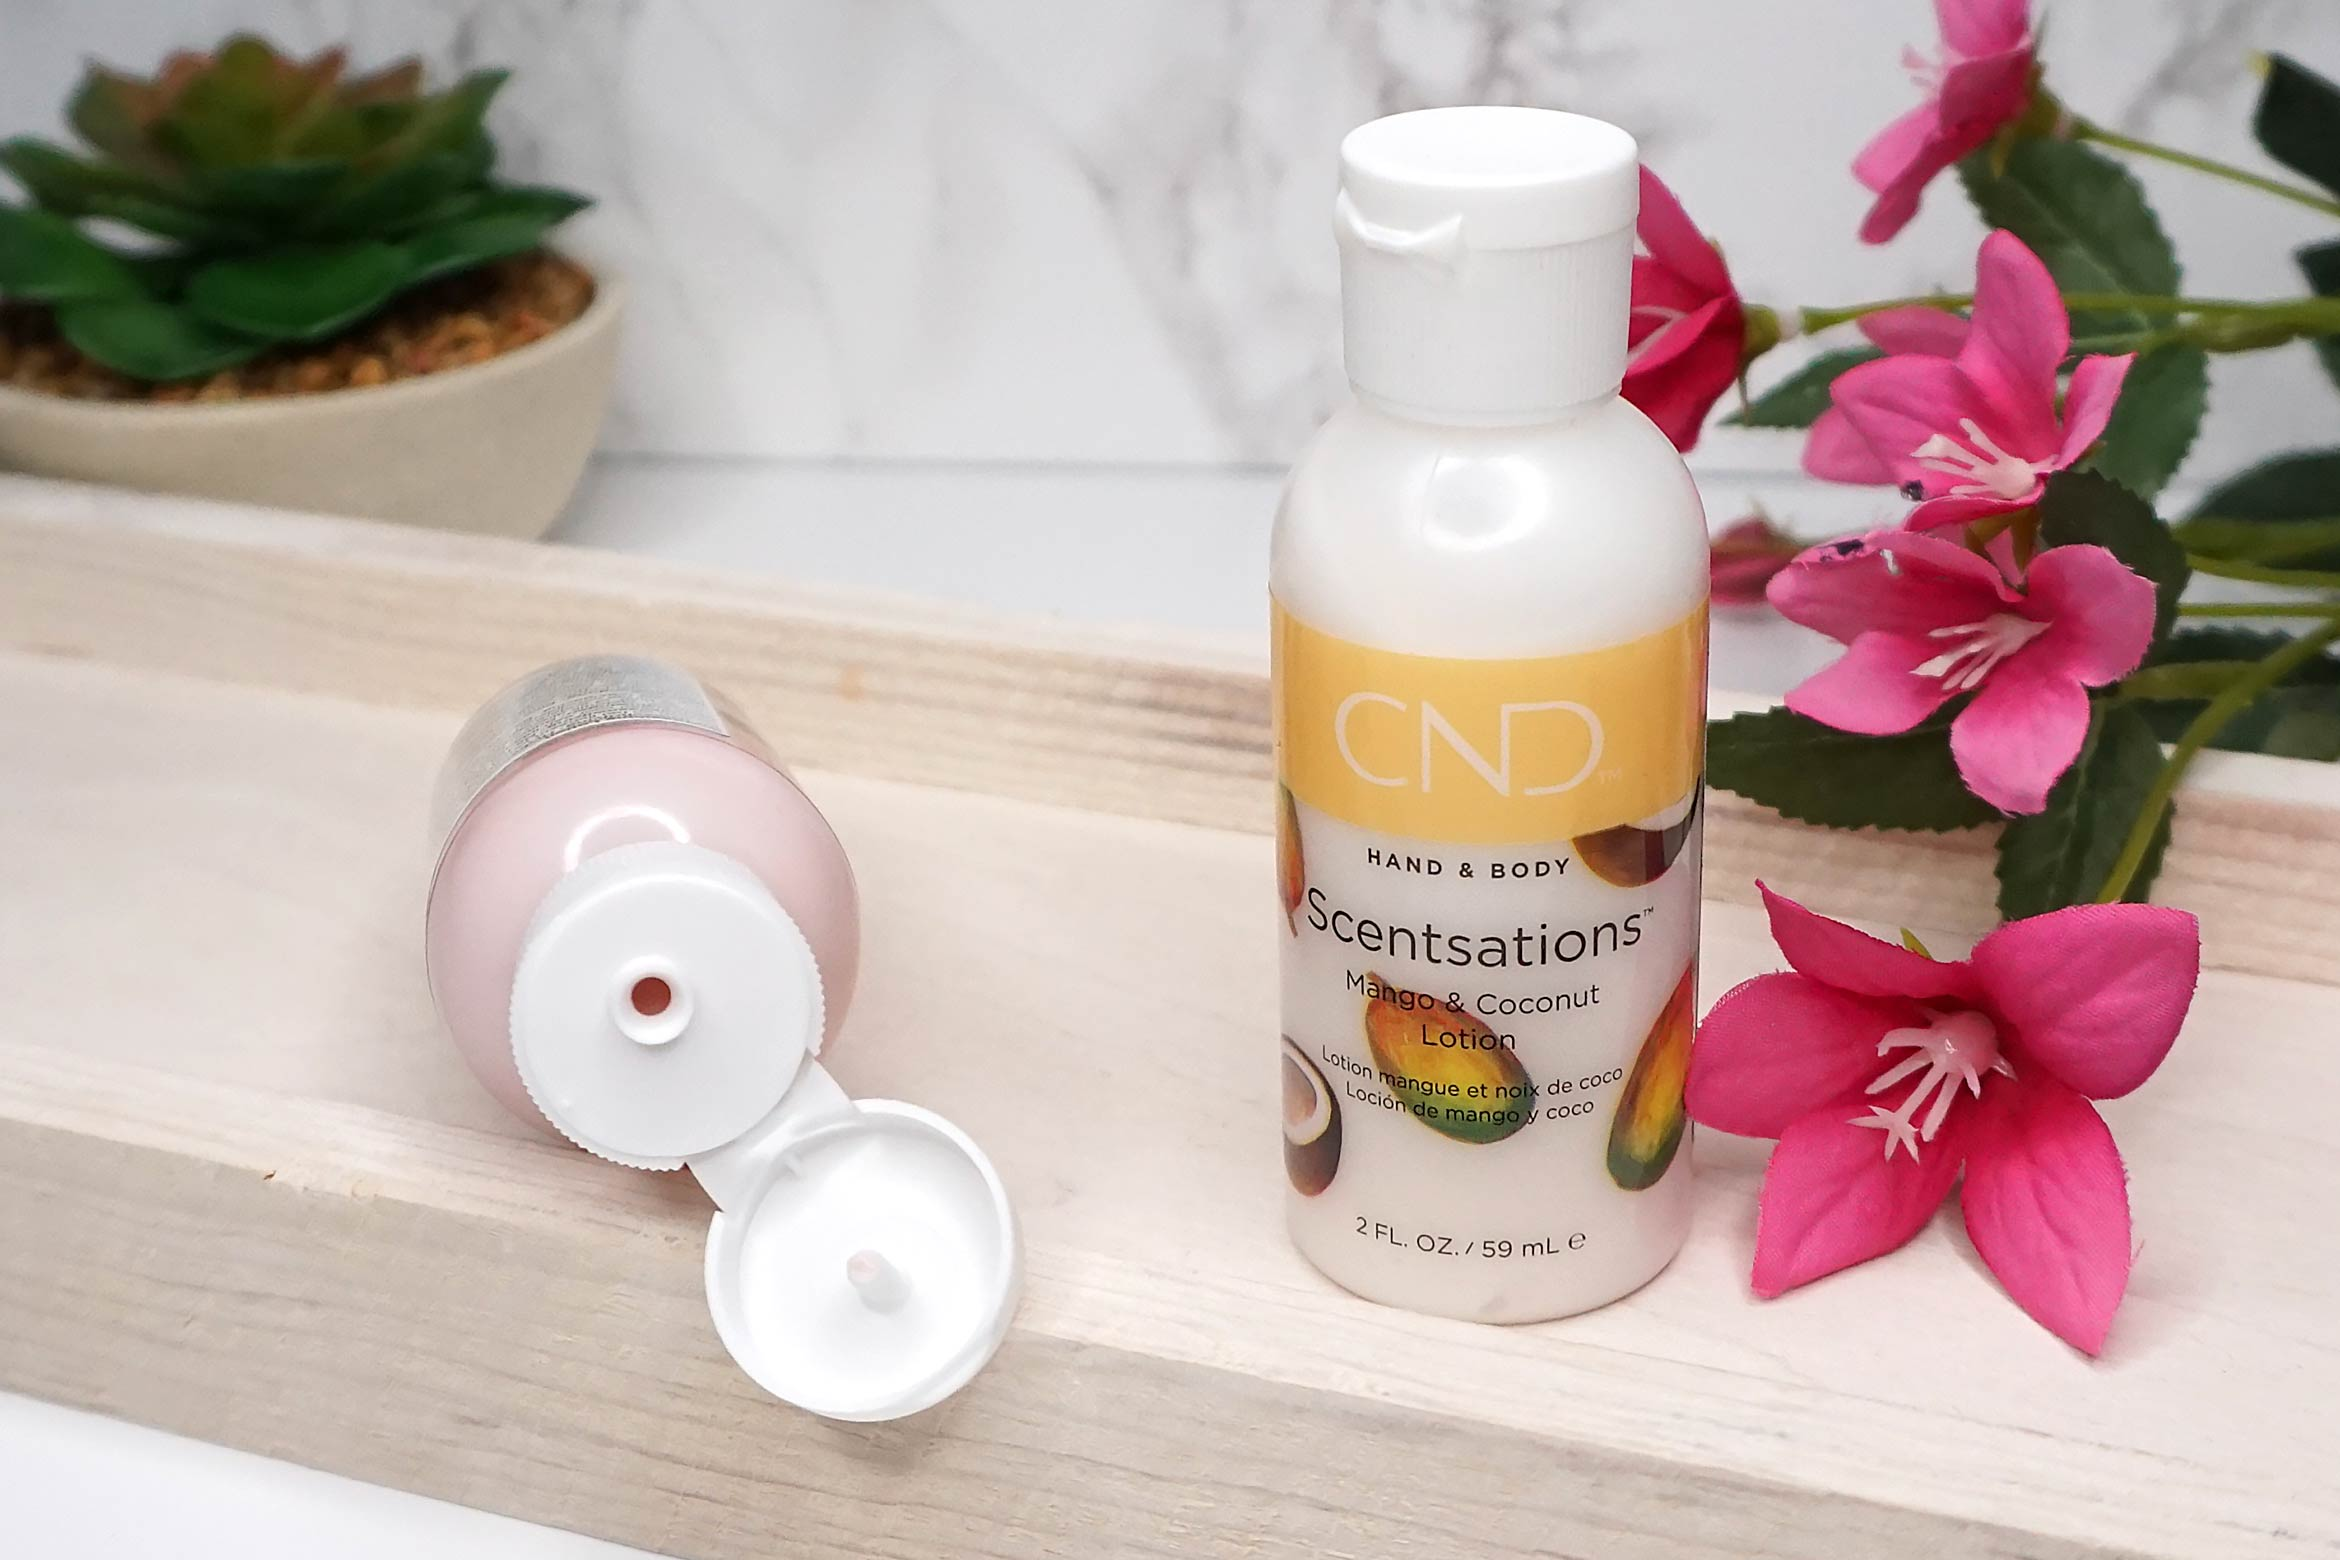 CND-Scentsations-lotion-review-1